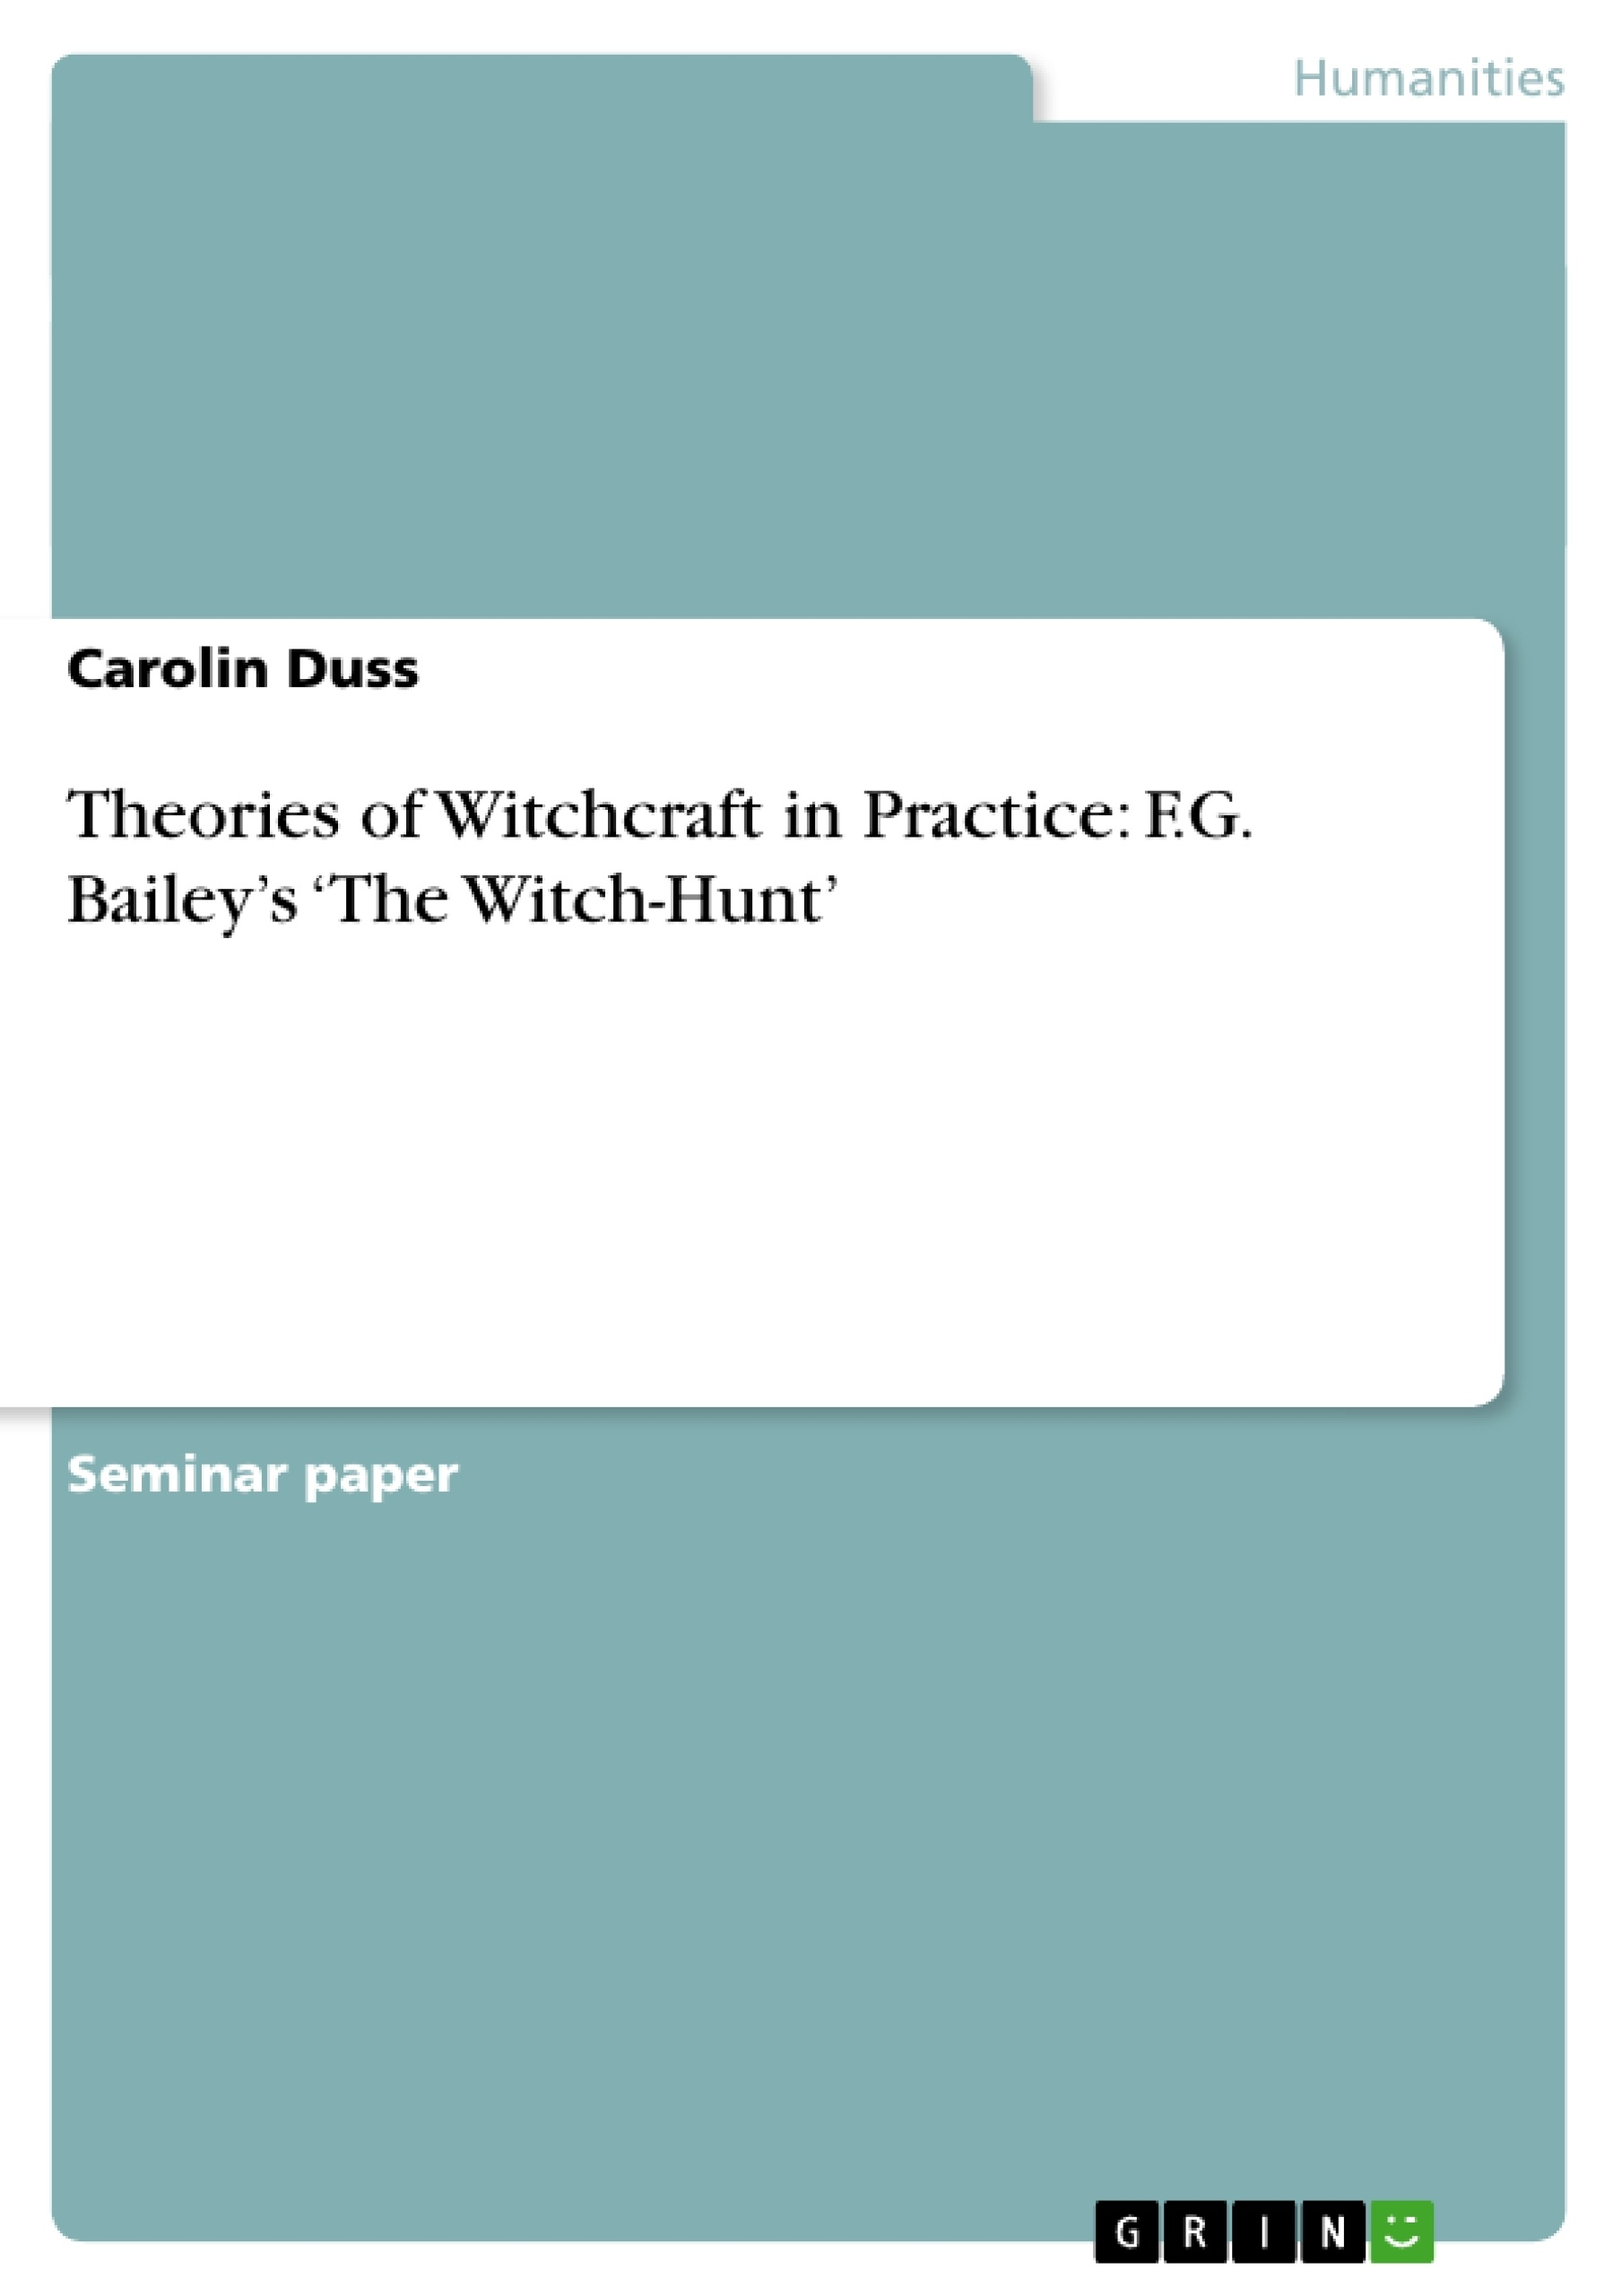 Theories of witchcraft in practice fg baileys the witch hunt upload your own papers earn money and win an iphone x fandeluxe Choice Image